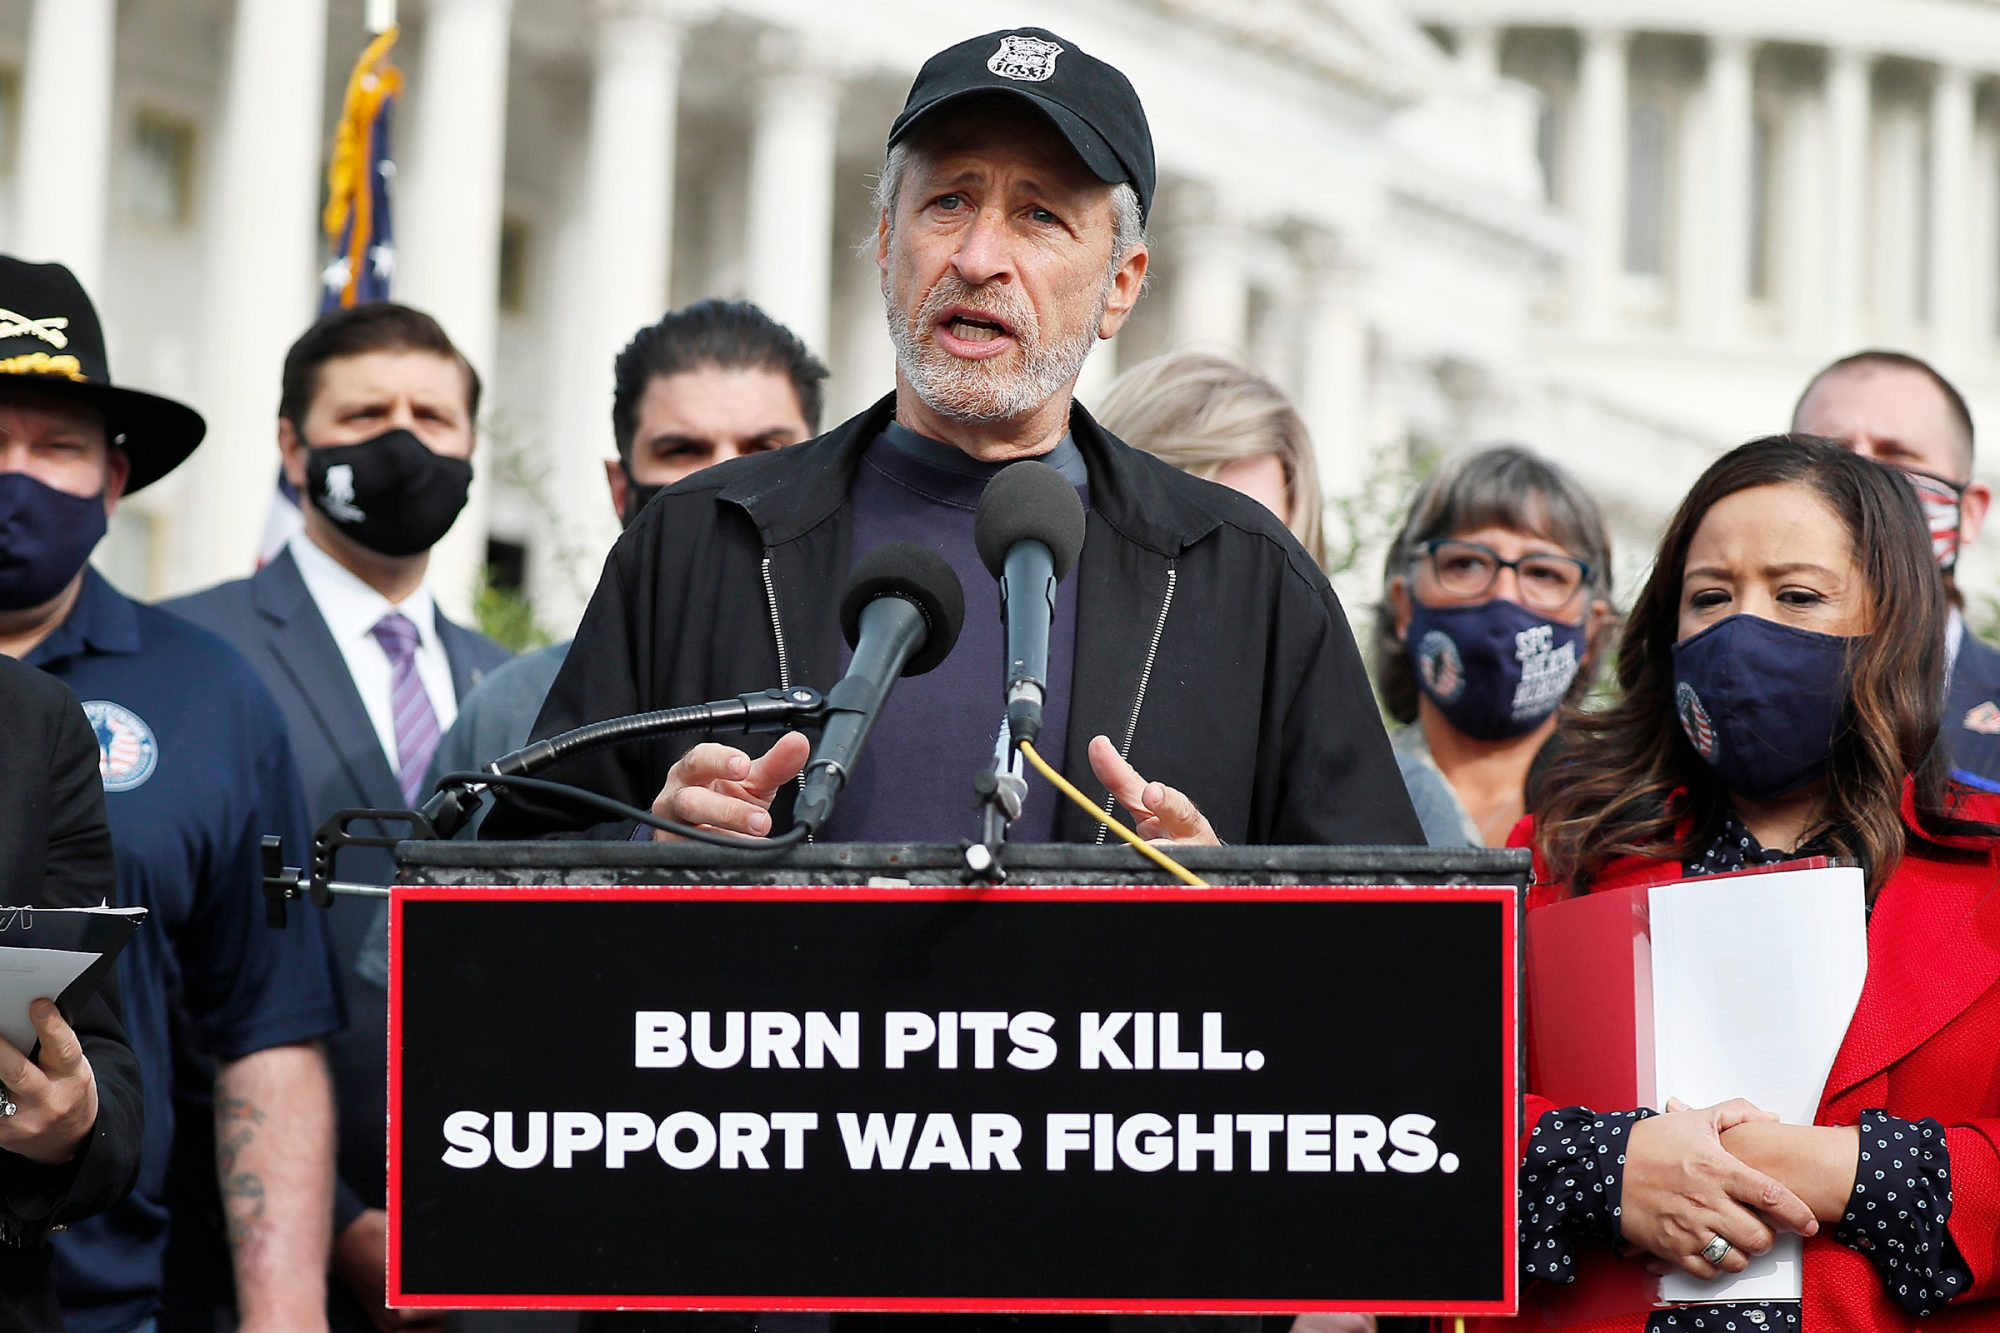 Jon Stewart Joins Members Of Congress For Press Conference On New Legislation Supporting Care For Veterans